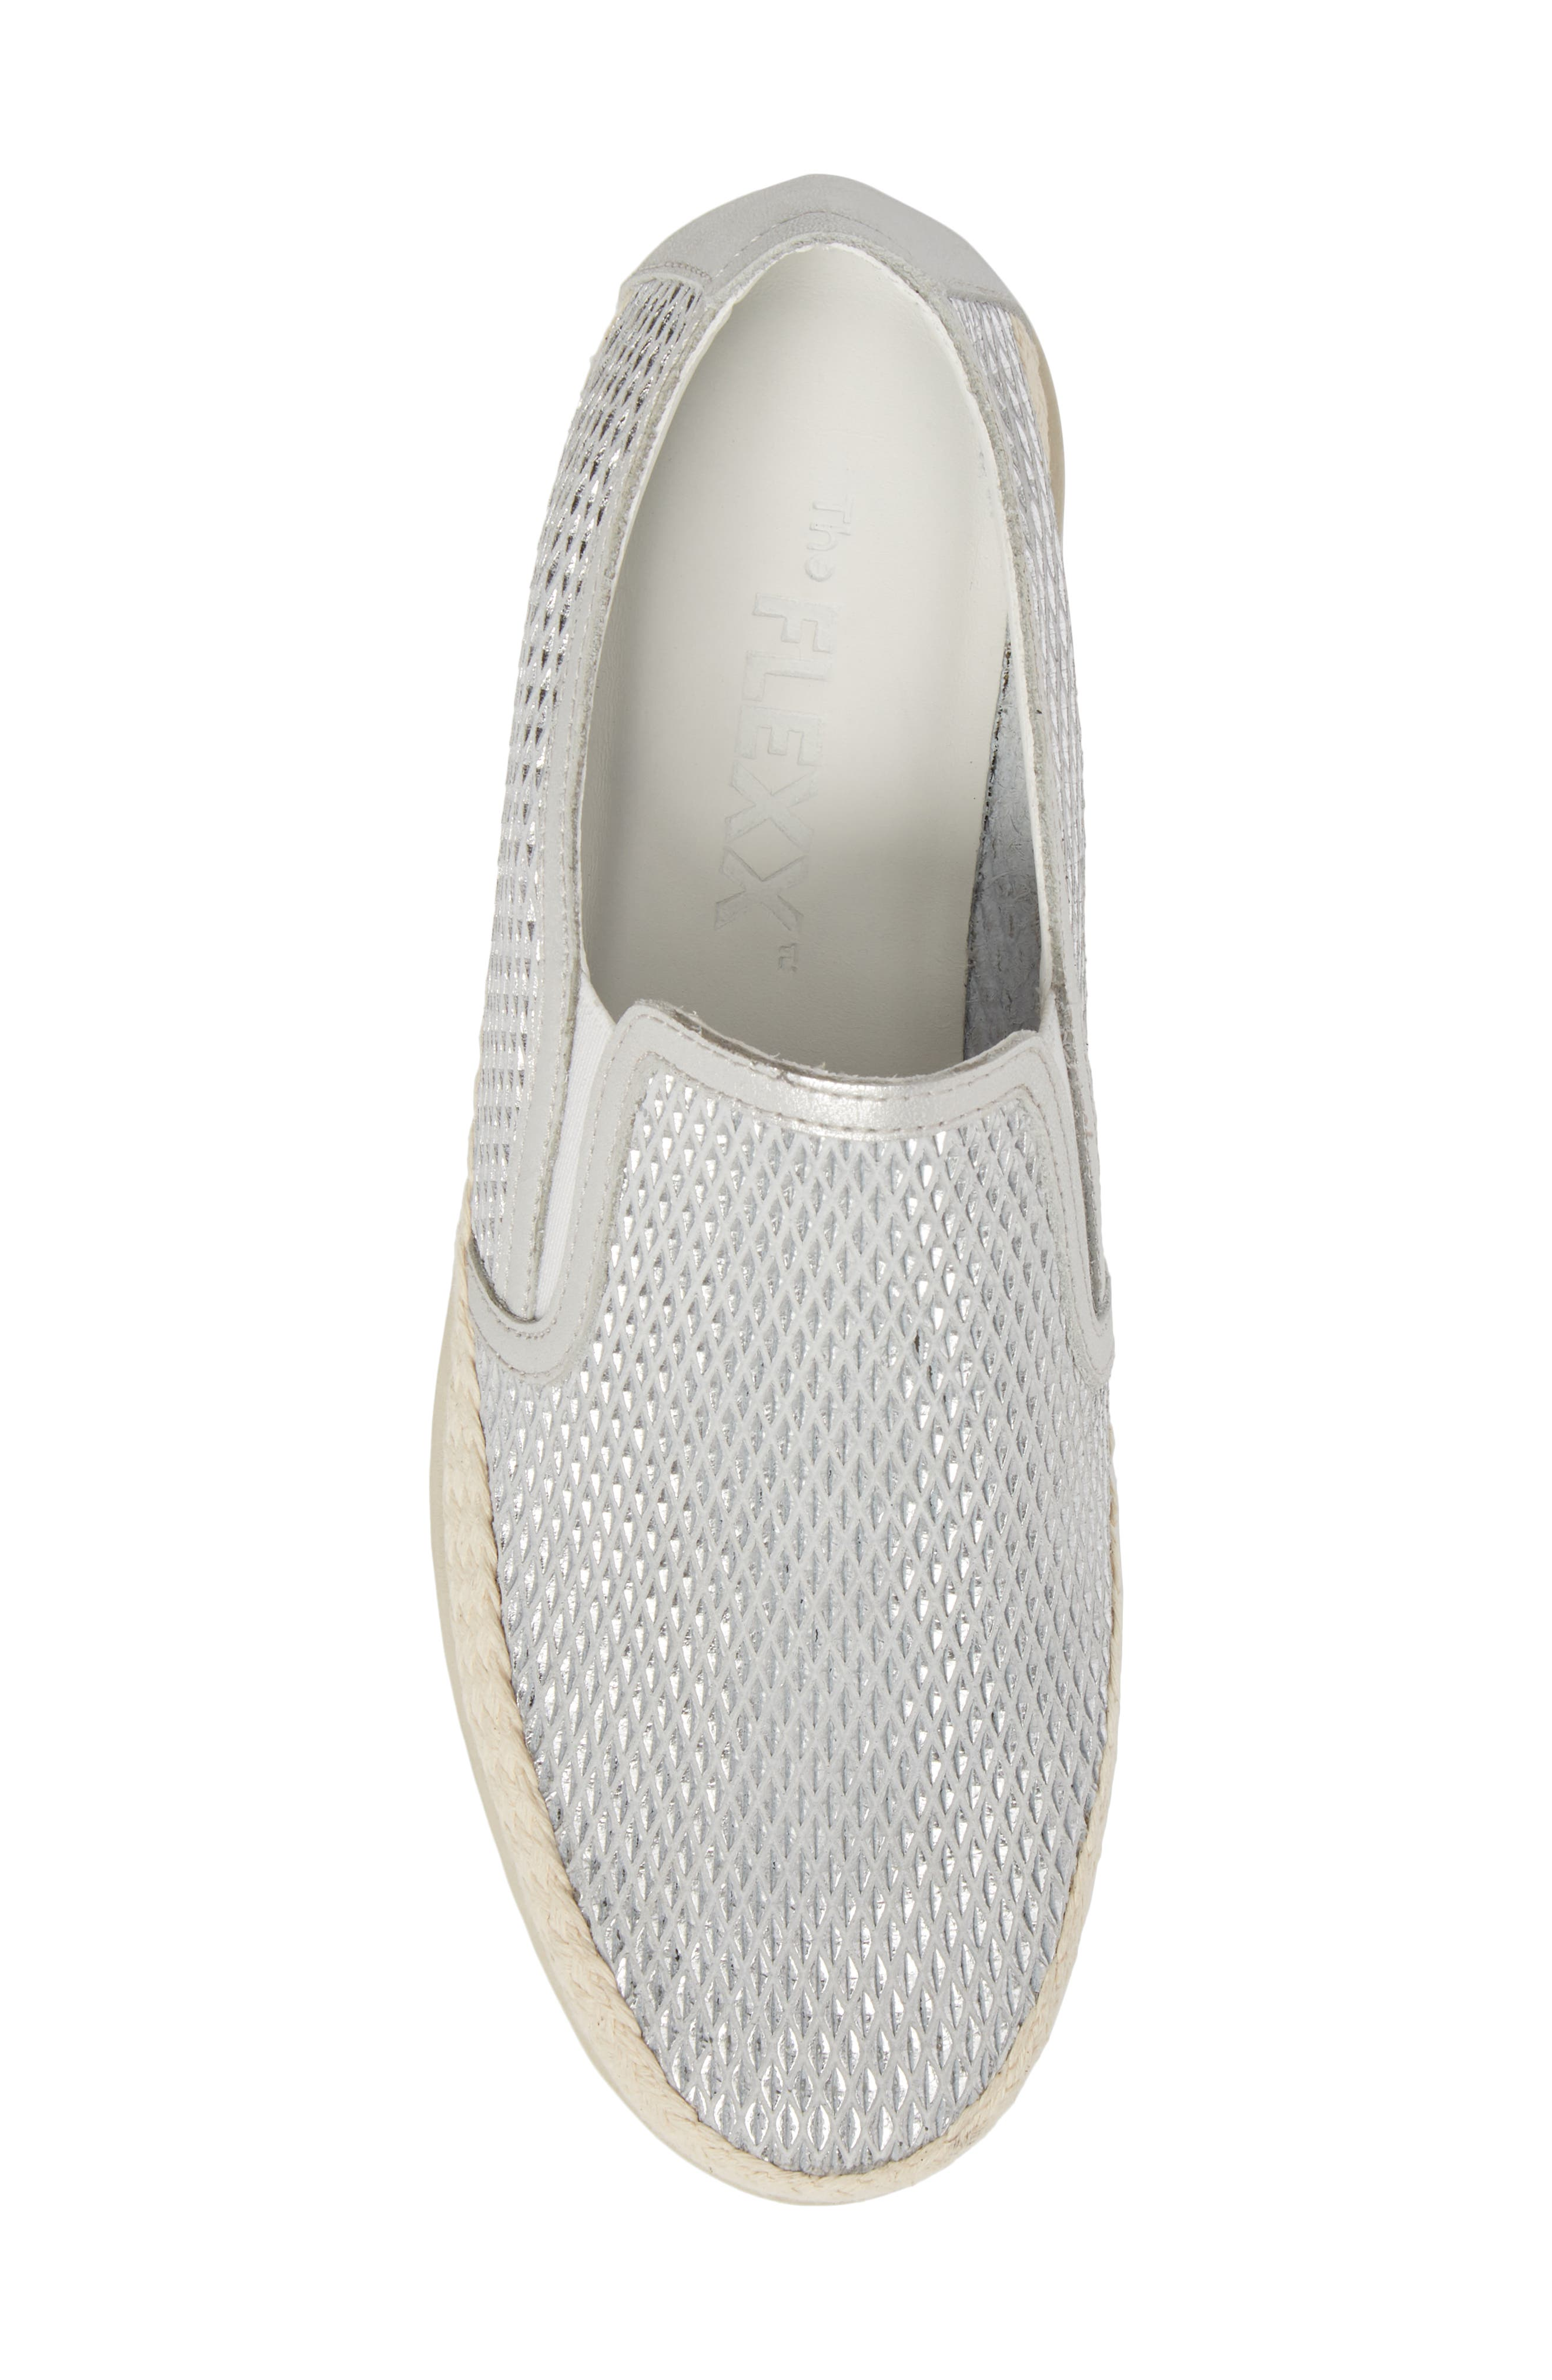 Call Me Perforated Slip-On Sneaker,                             Alternate thumbnail 5, color,                             White/ Silver Leather